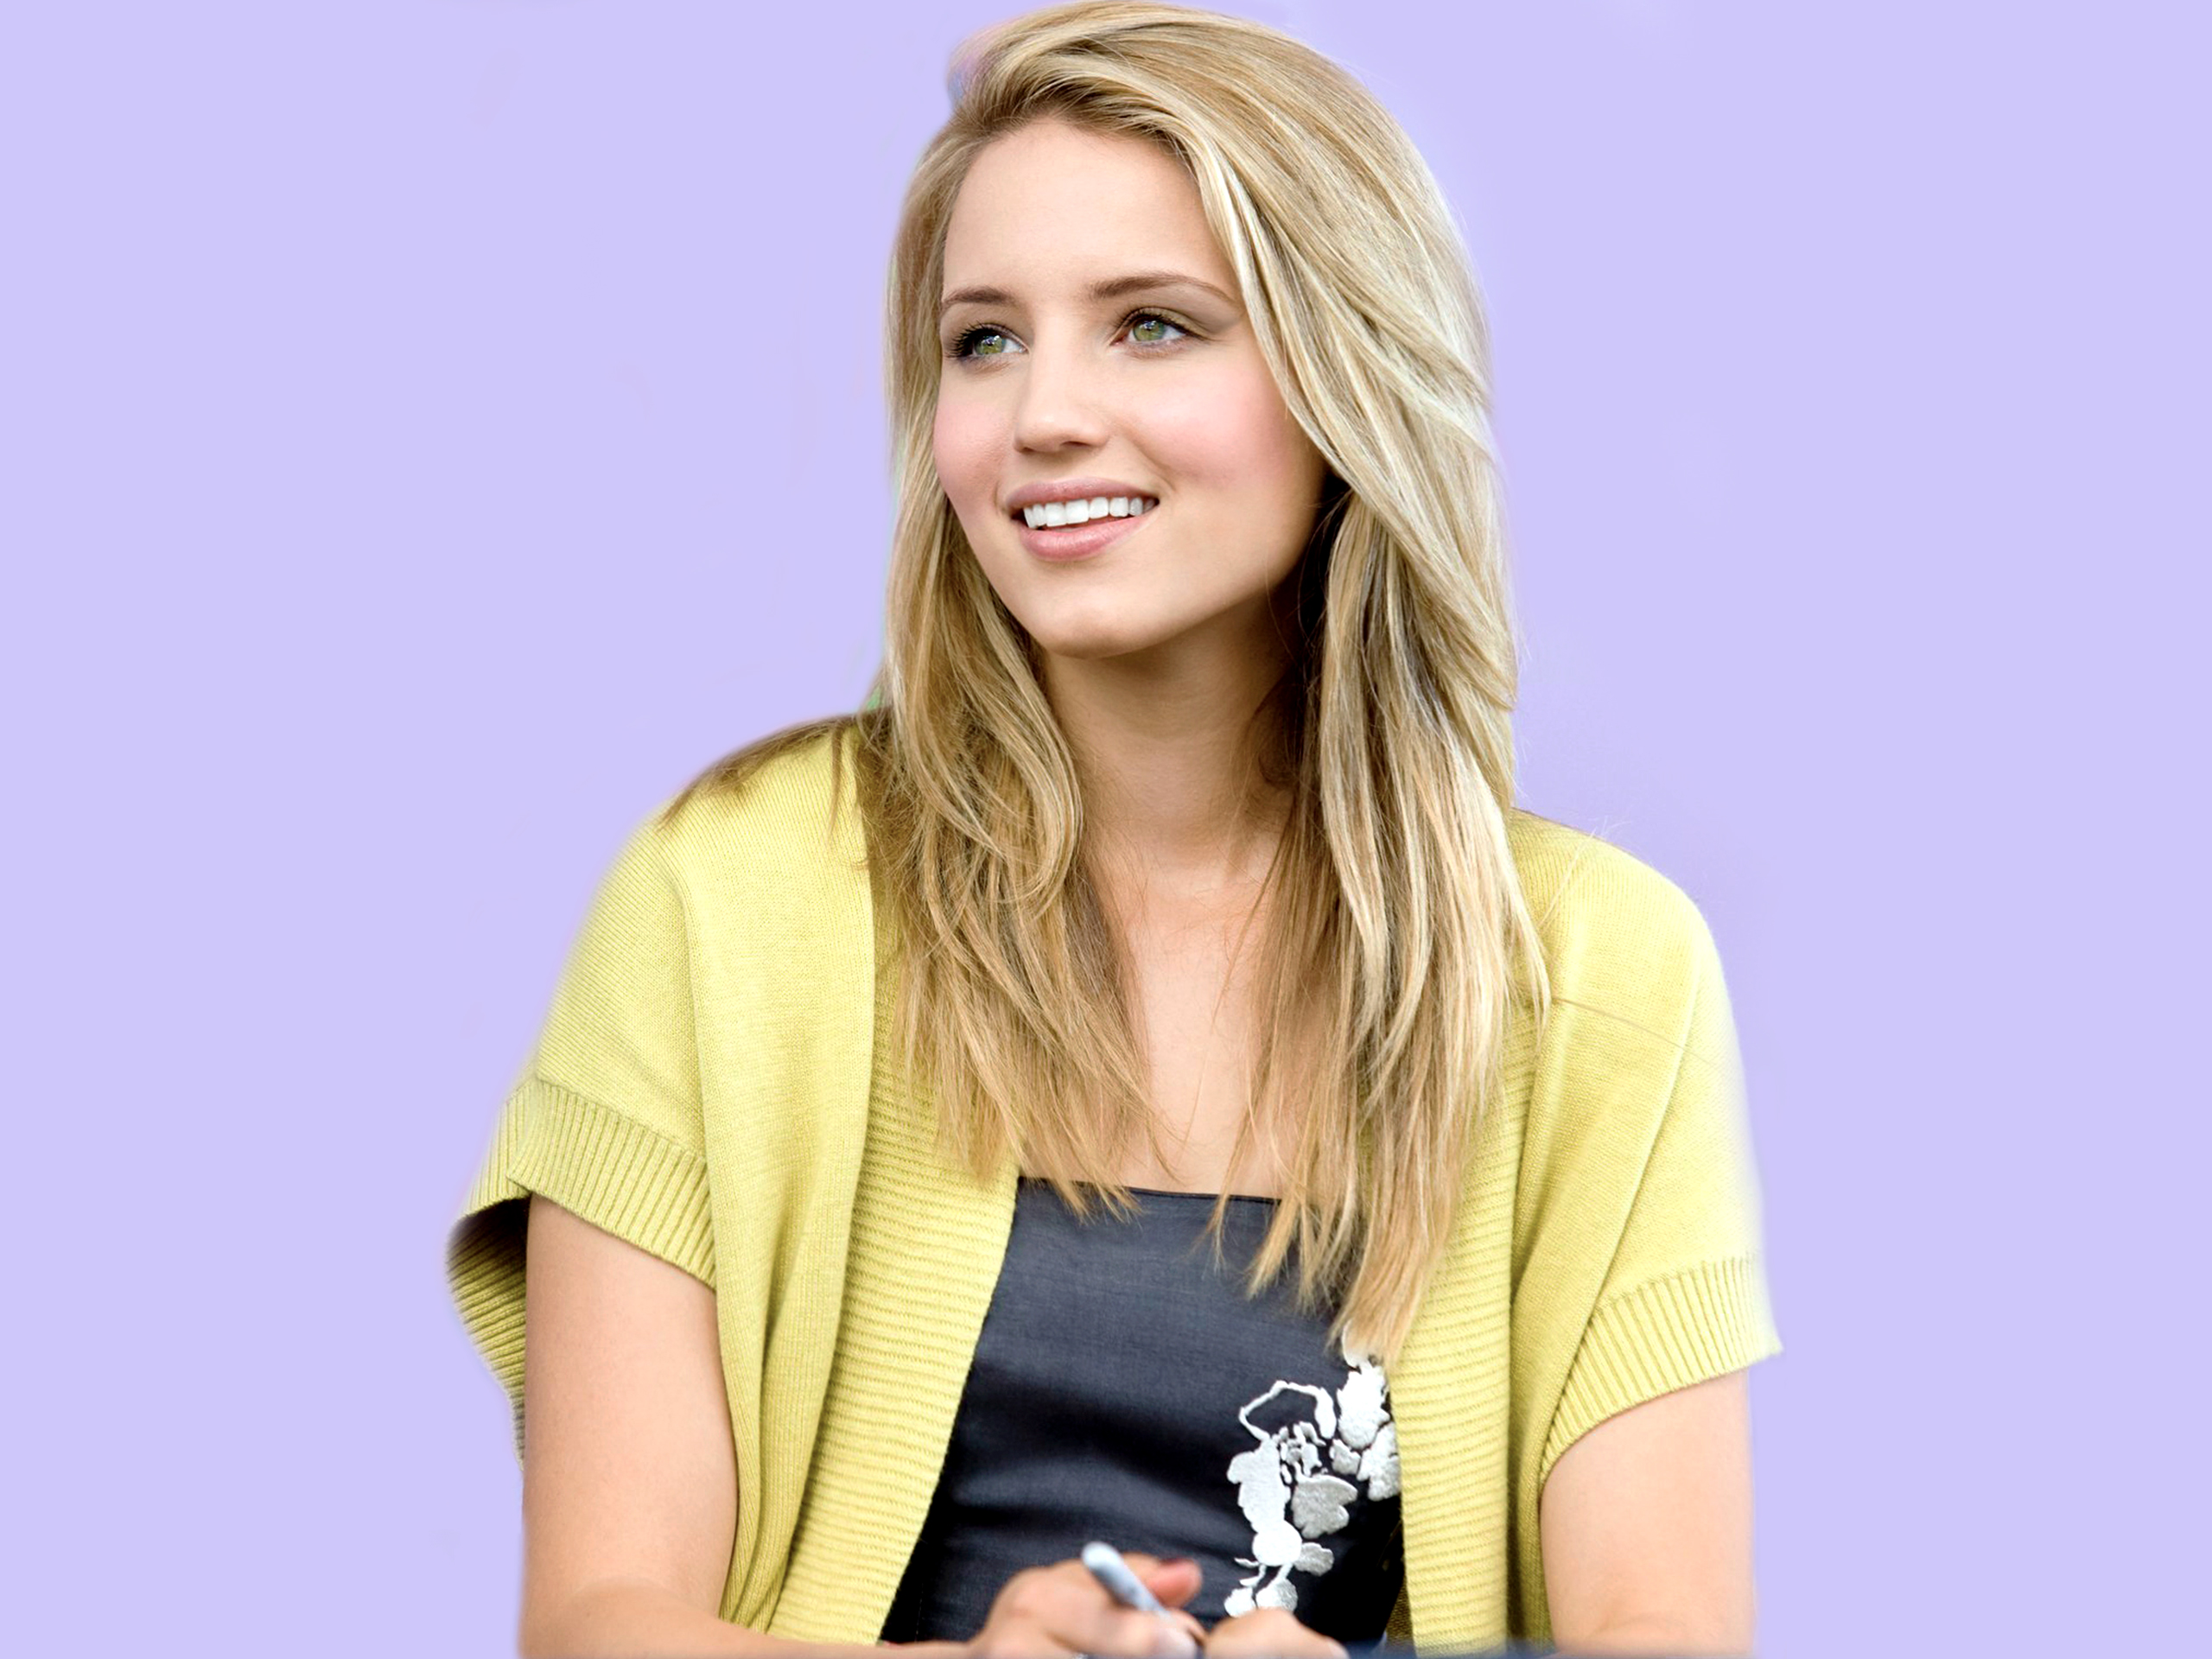 2560x1920 - Dianna Agron Wallpapers 10